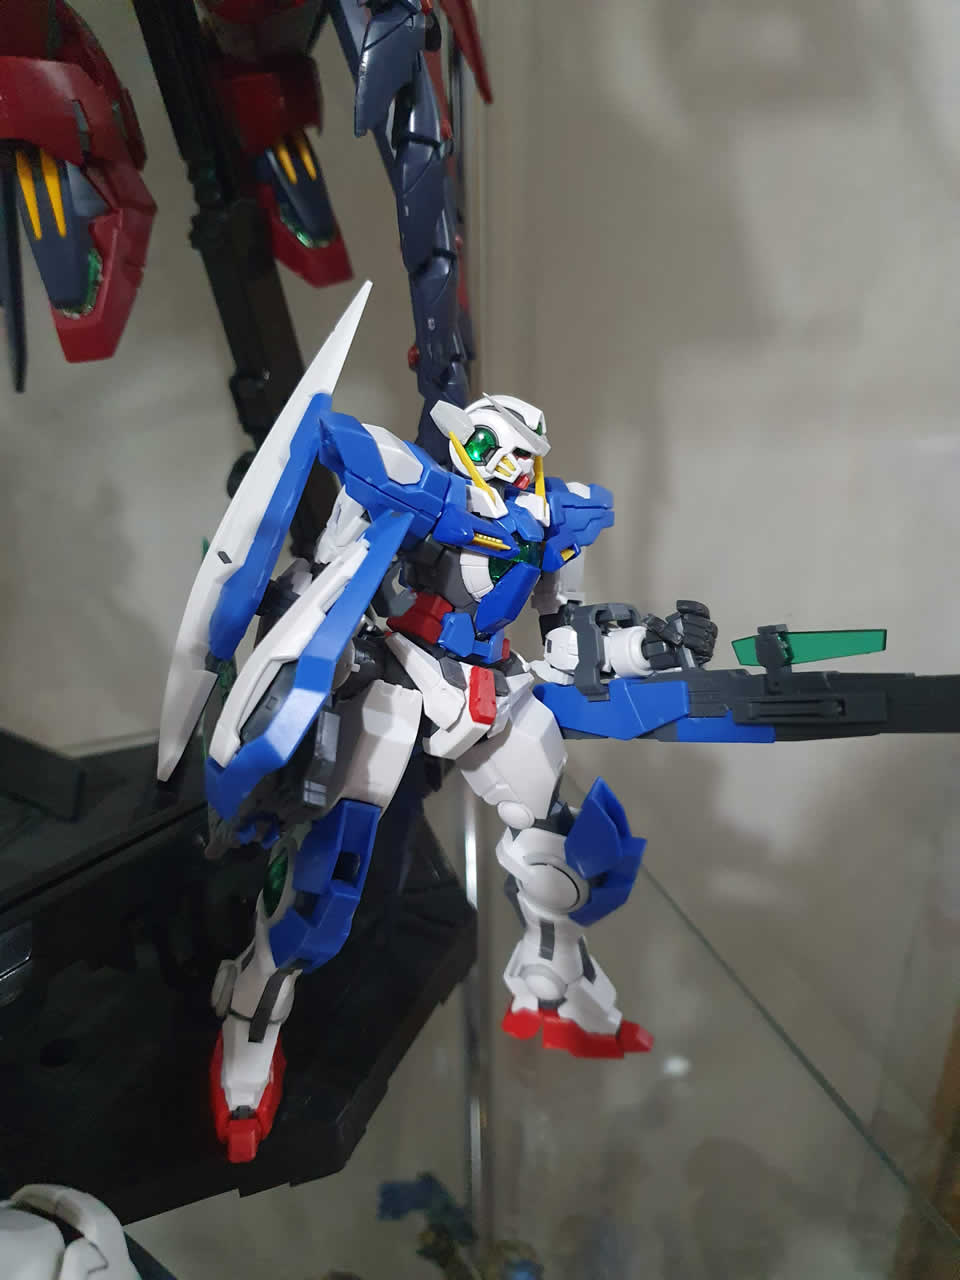 Exia Repair RG equipping all the weapons